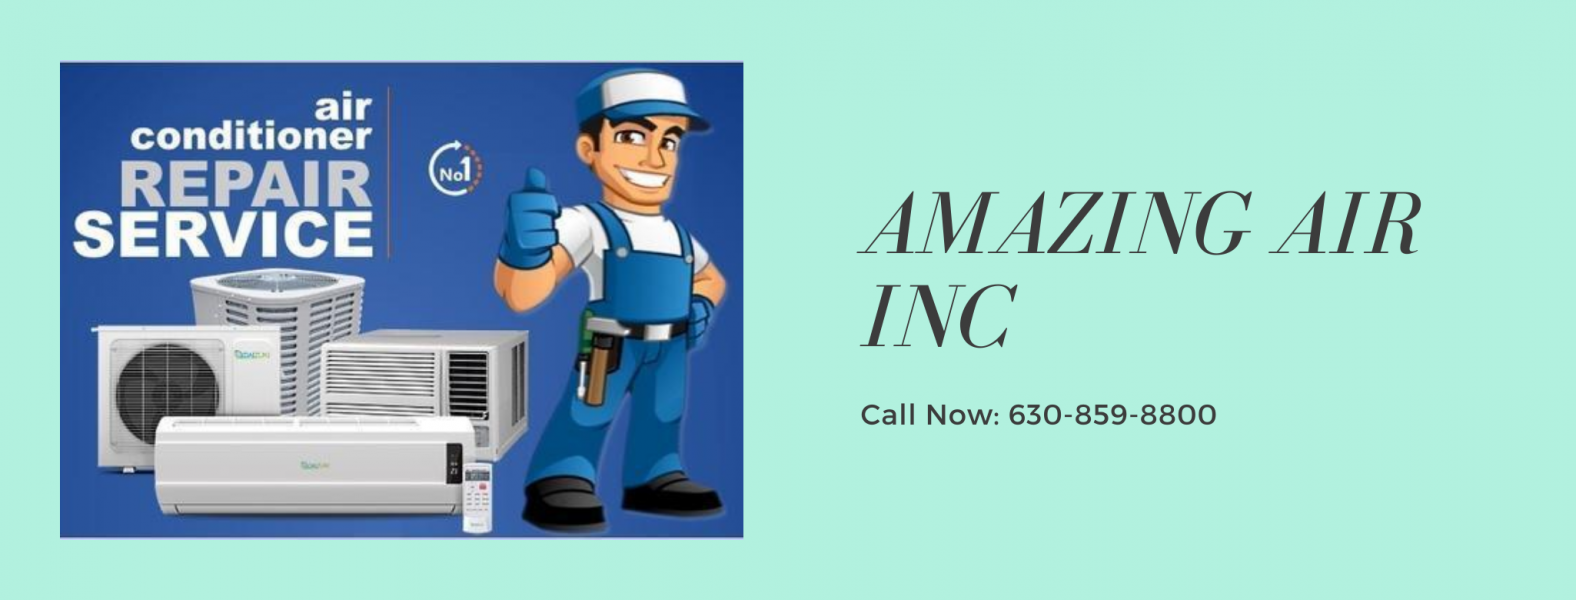 Furnace Repair in Naperville